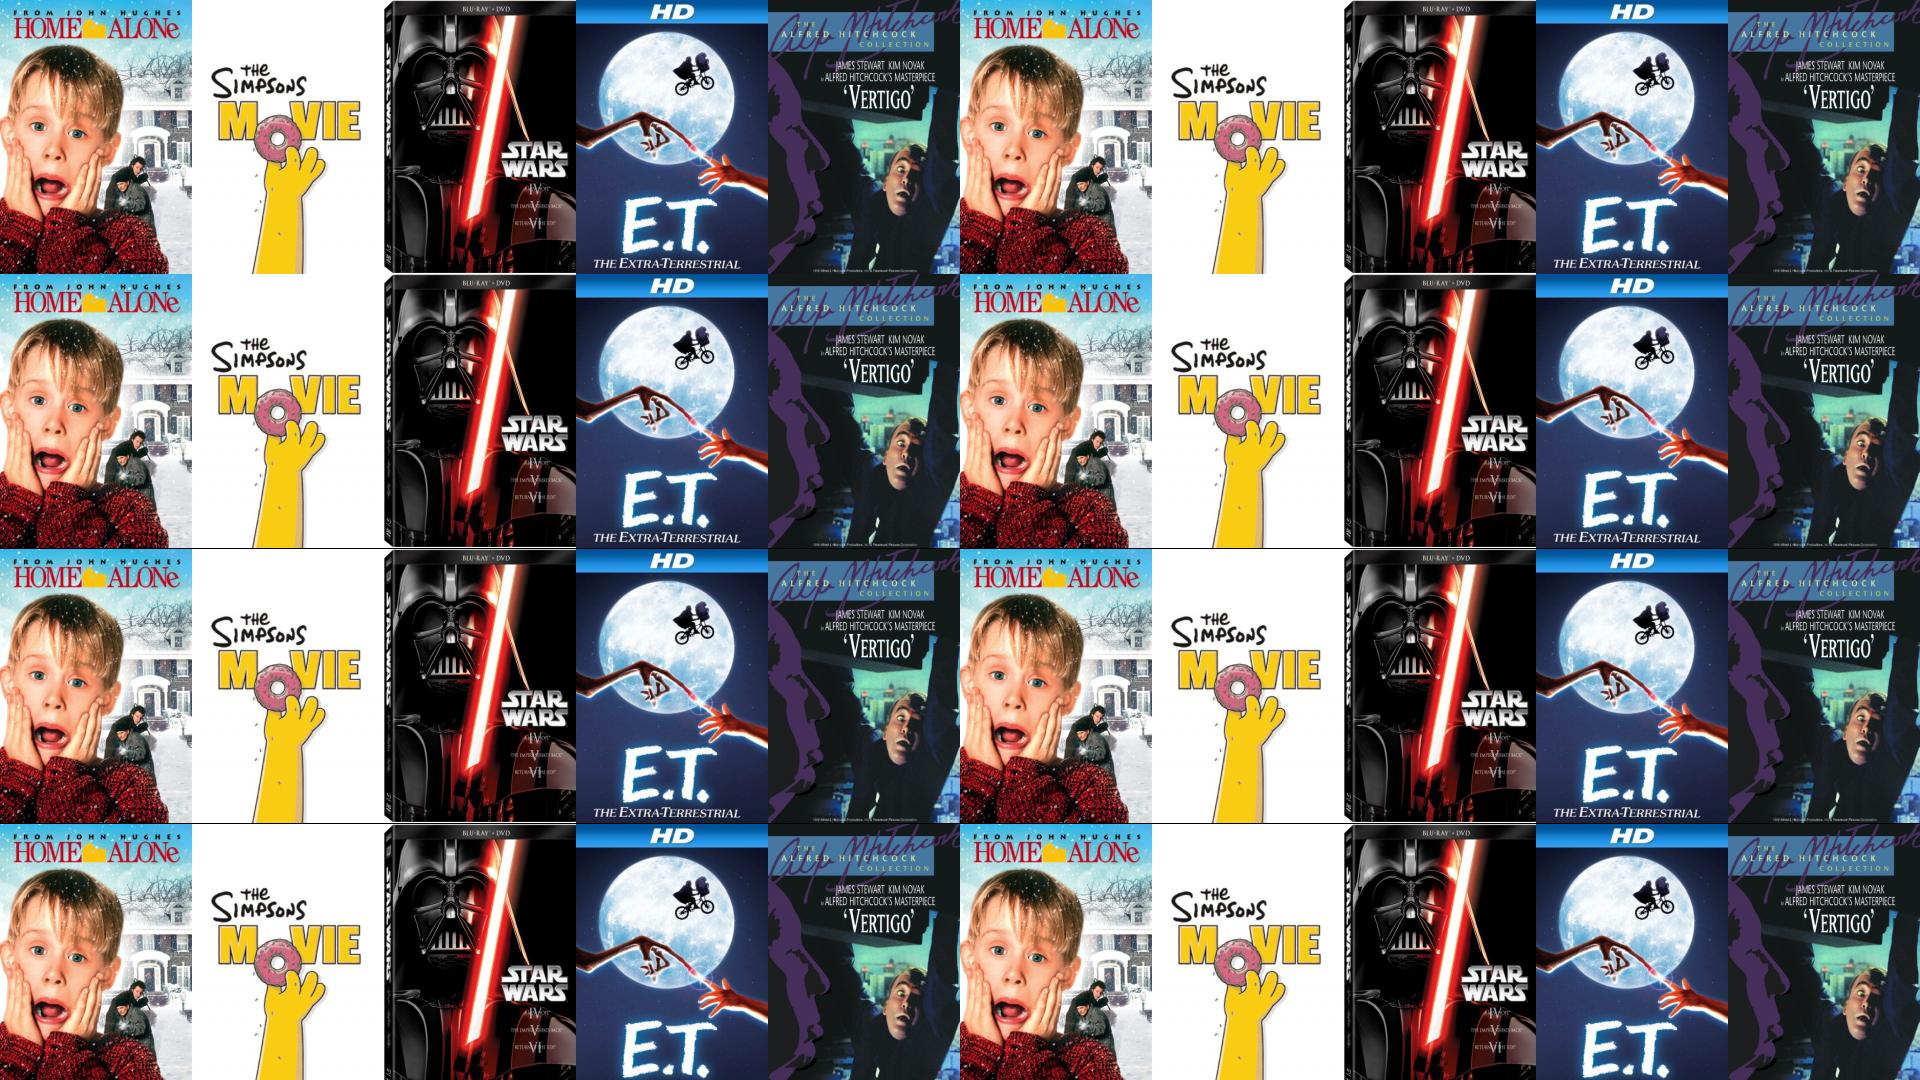 Home Alone Simpsons Movie Star Wars Episode Iv Wallpaper Tiled Desktop Wallpaper